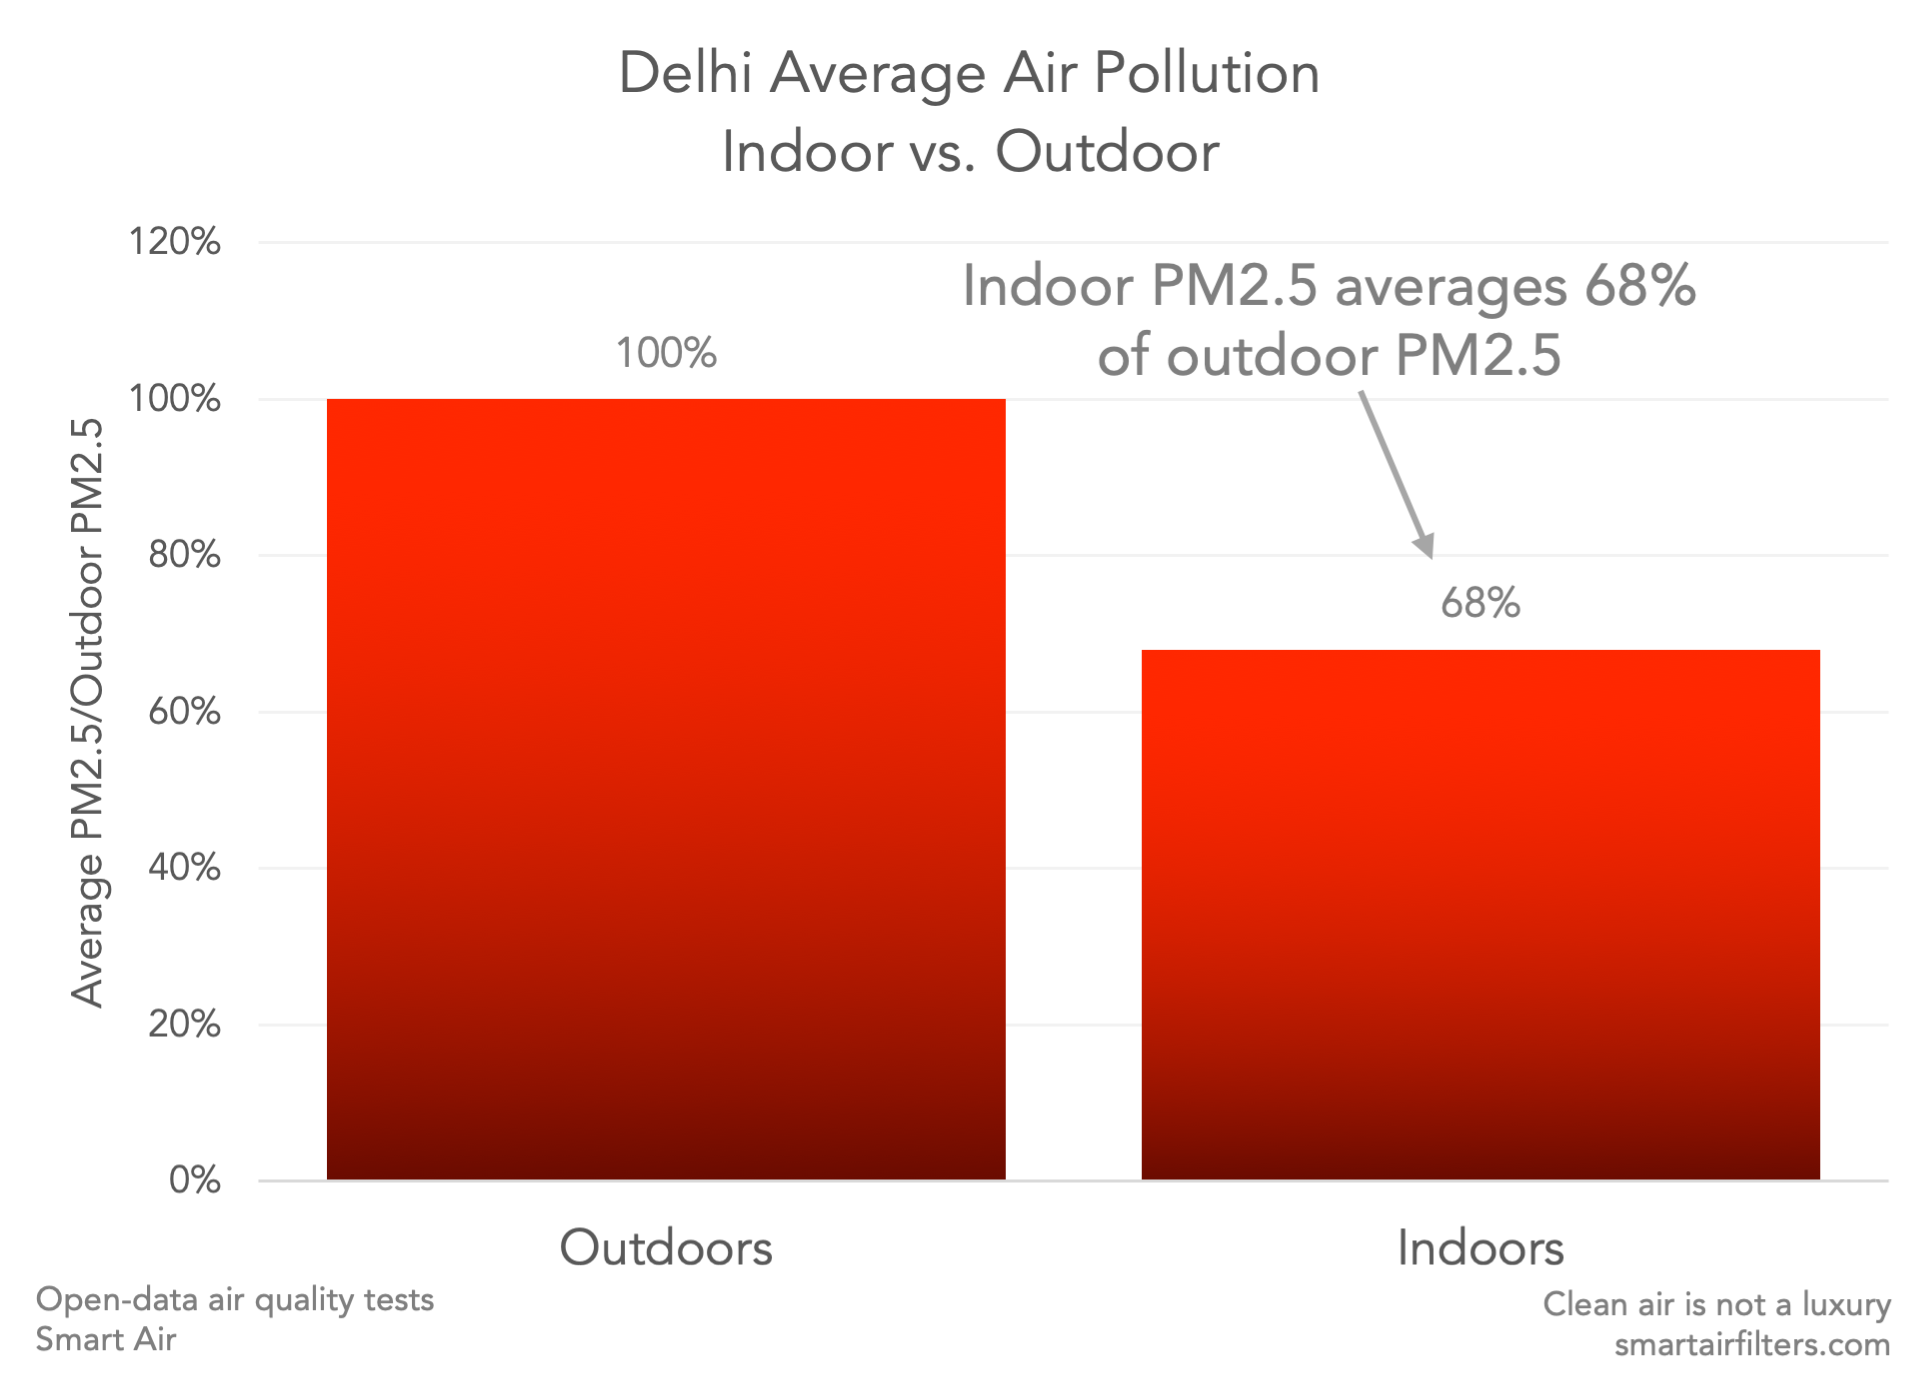 Indoor air PM2.5 averages 68% of outdoor air PM2.5